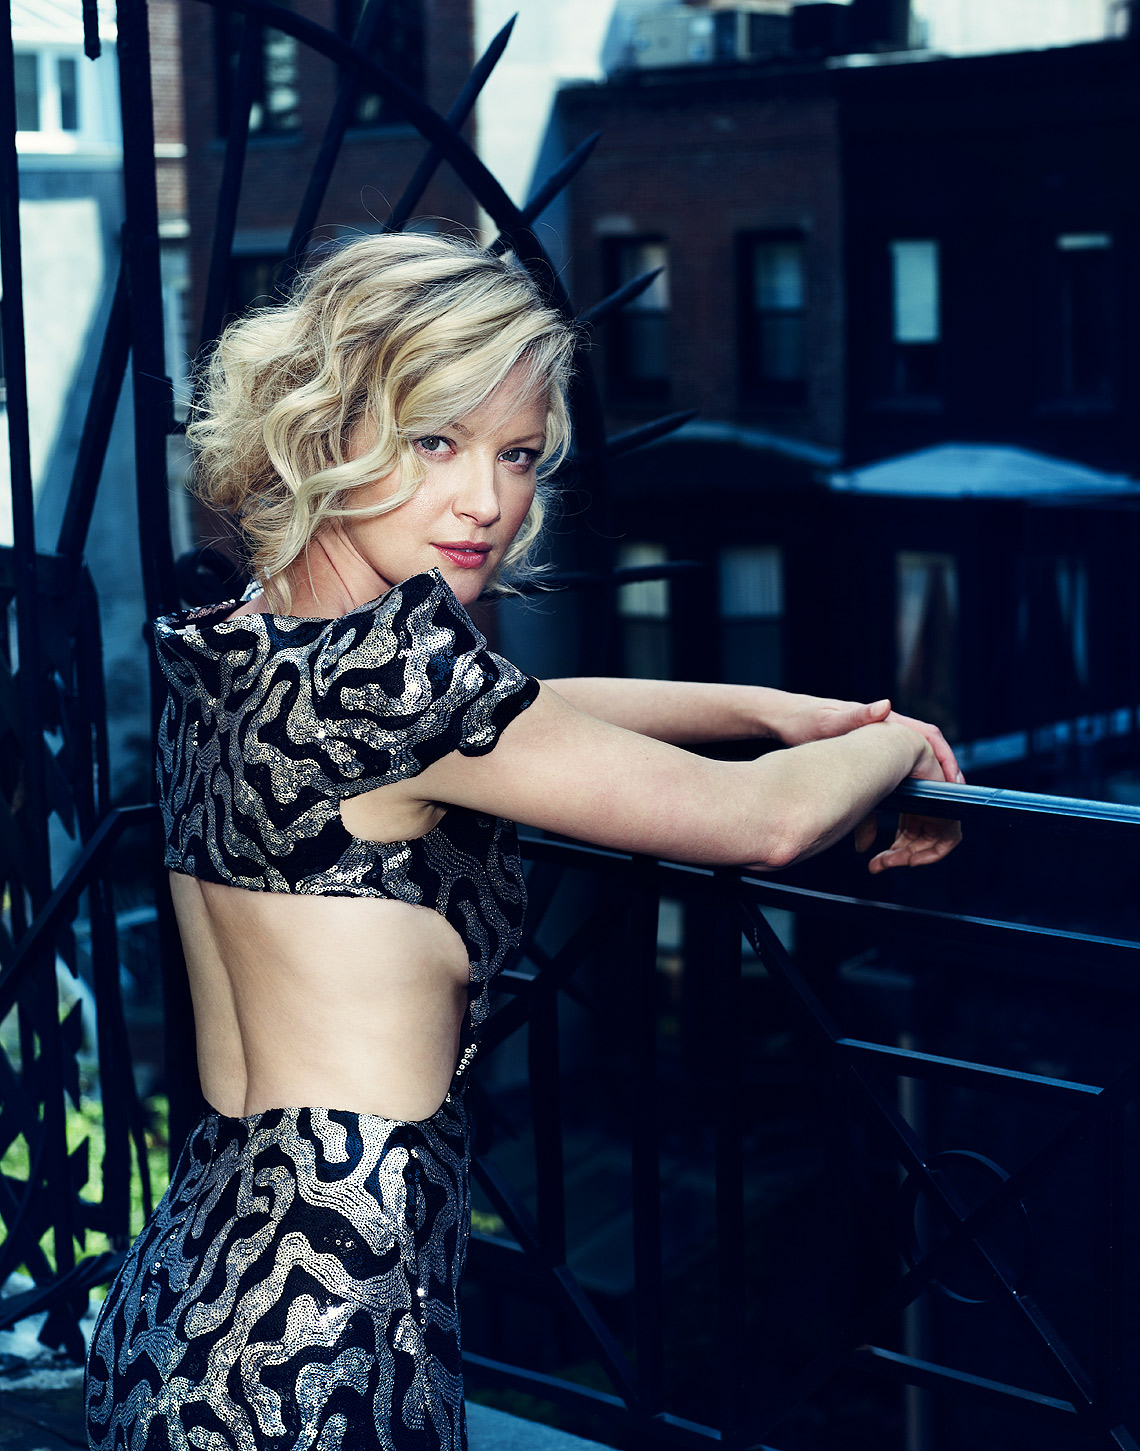 Gretchen-Mol-by-Robert-Ascroft-07.jpg